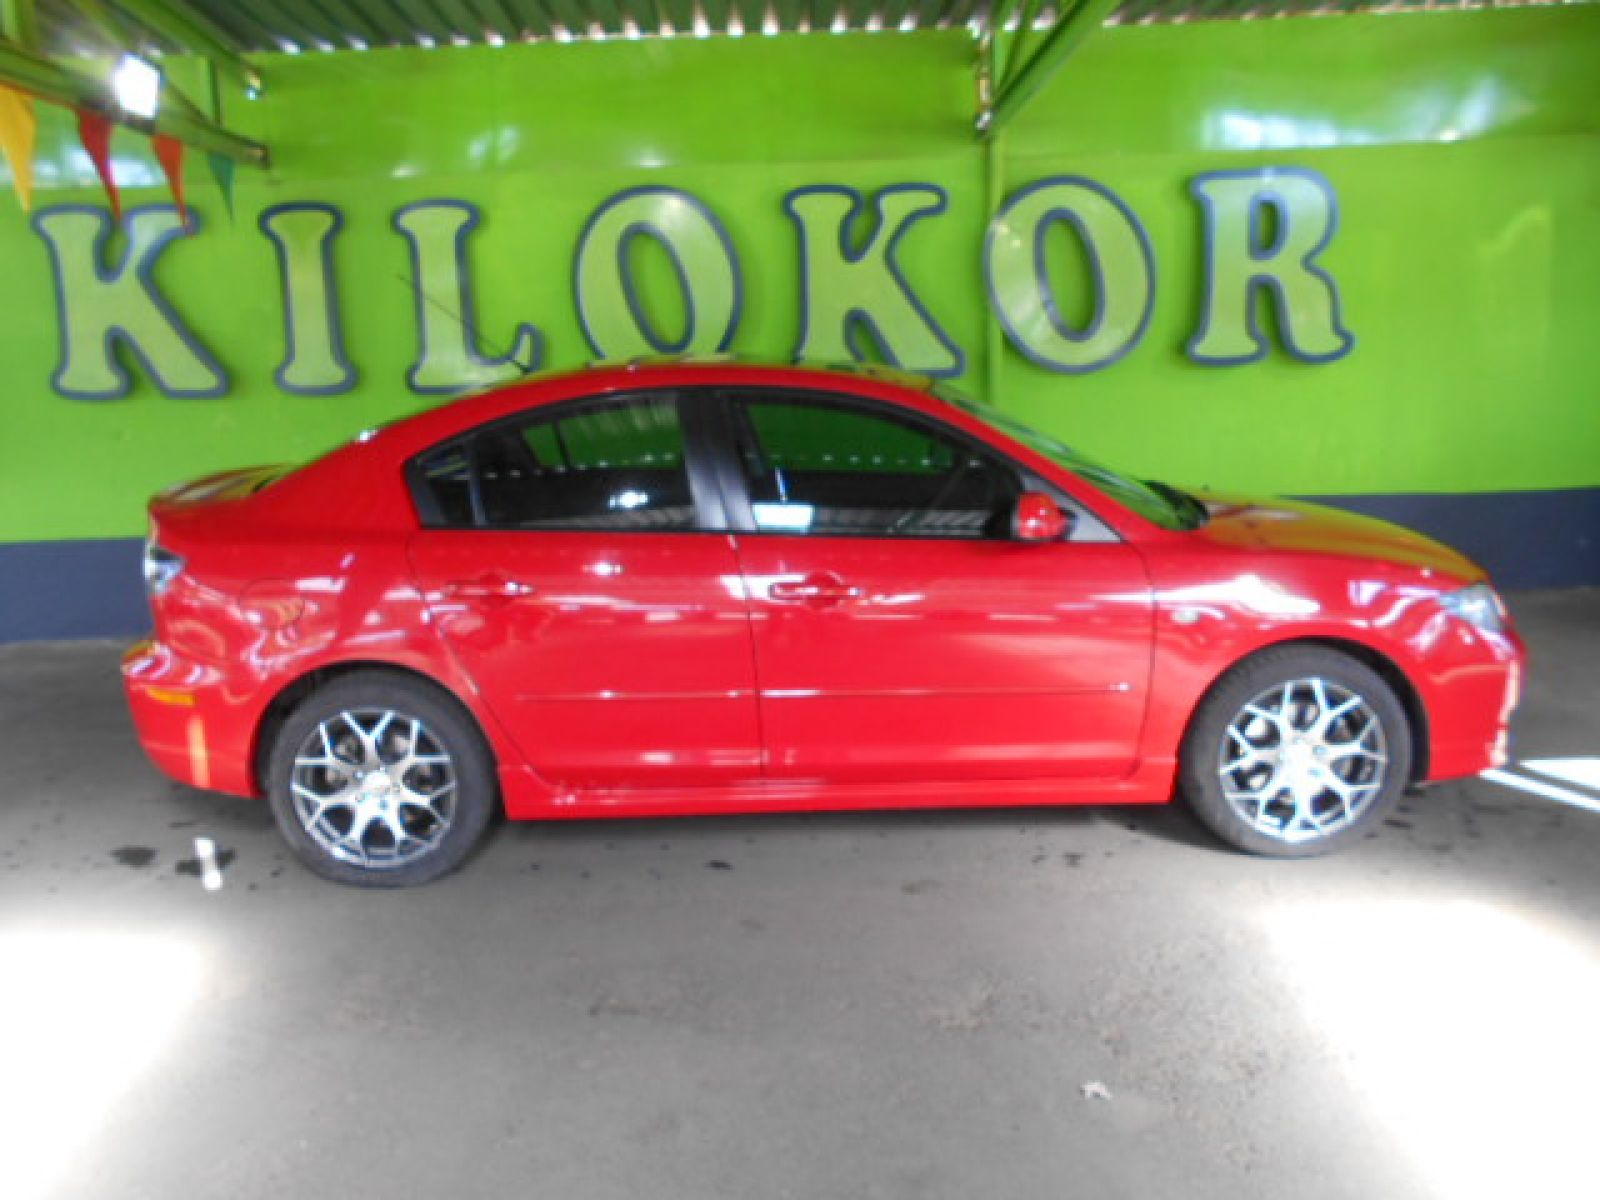 2008 Mazda 3 R 119 990 For Sale Kilokor Motors